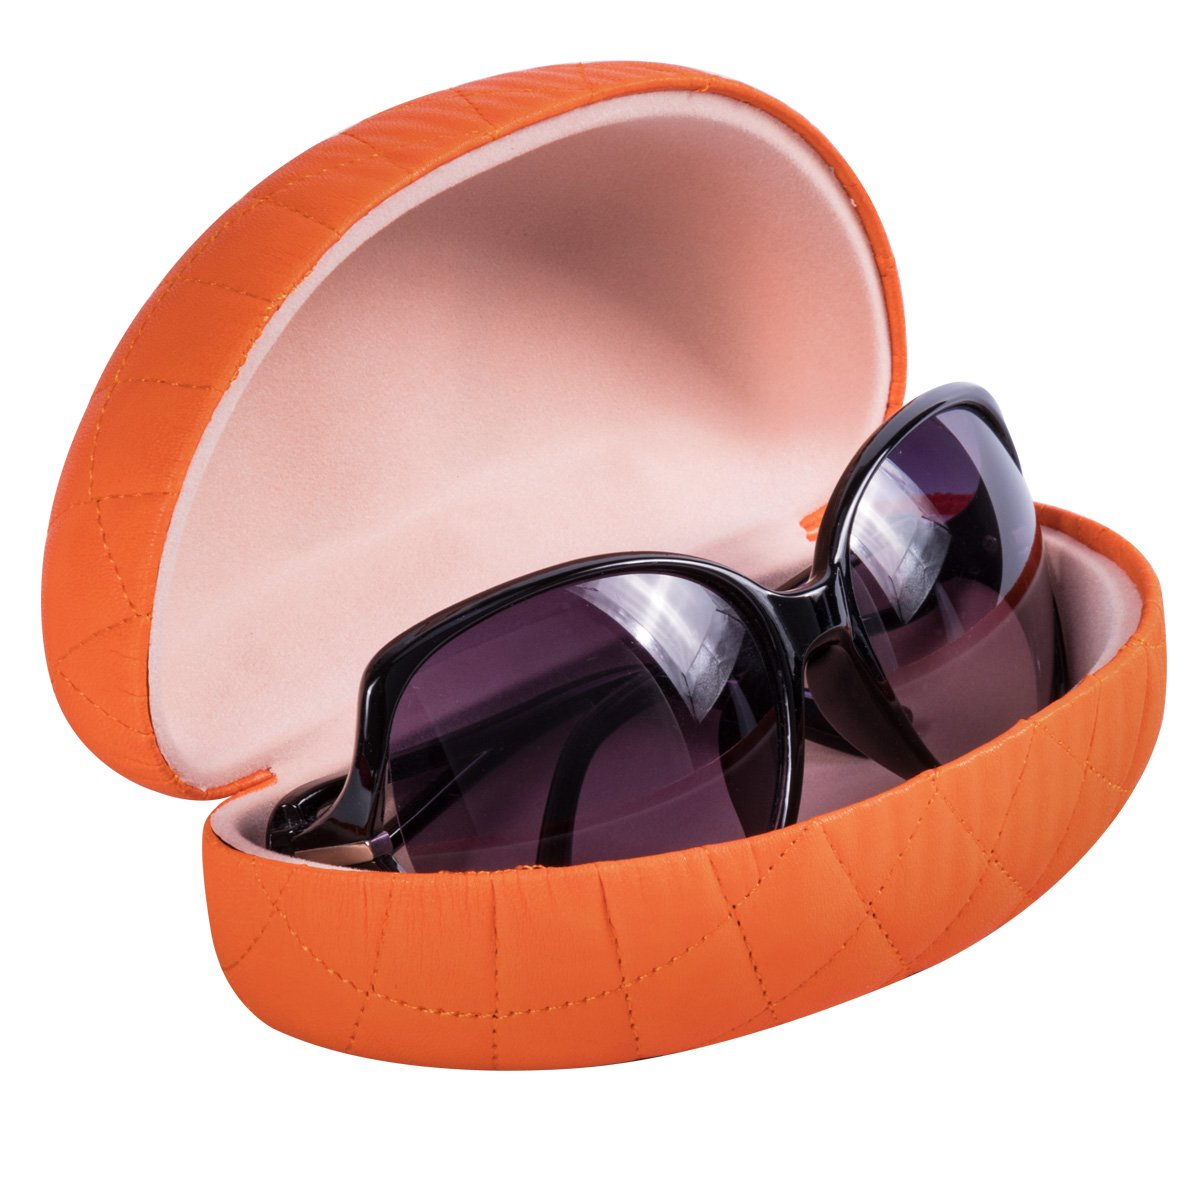 Special Pink xhorizon FL1 Classic Extra Large Case for Oversized Sunglasses and Eyeglasses